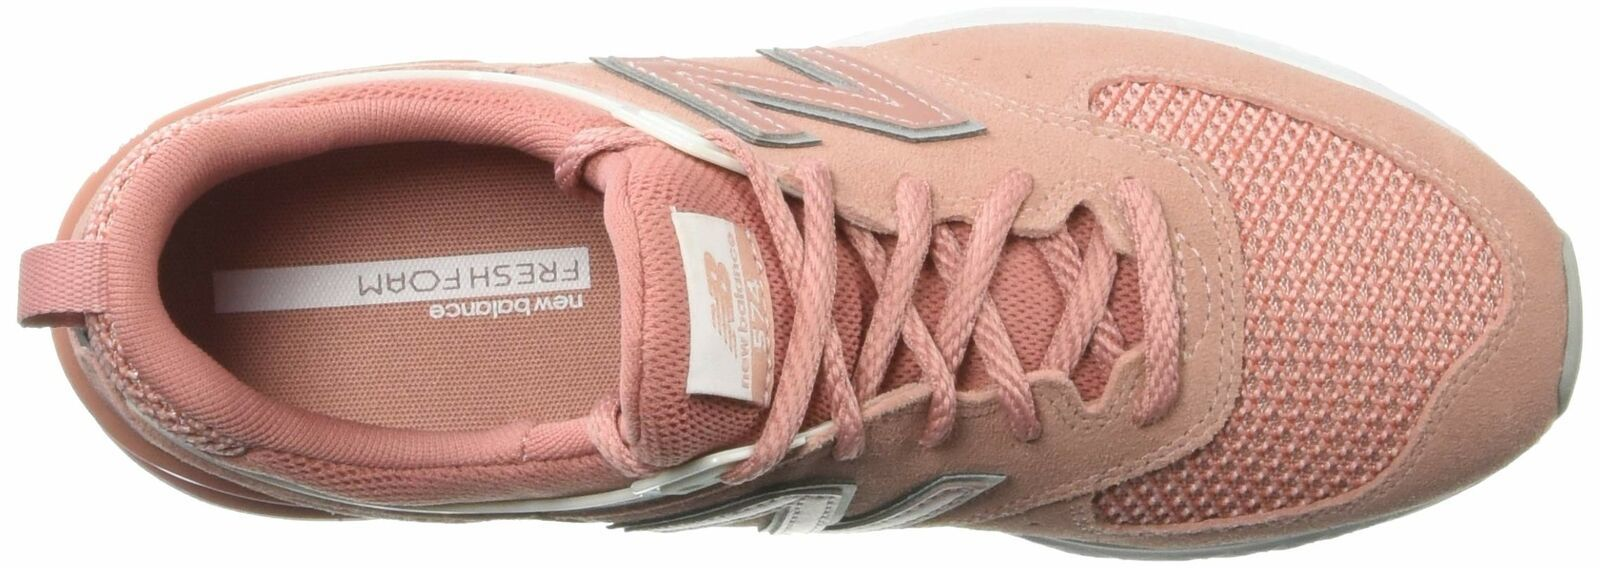 NEW BALANCE MEN'S 574 SPORT SNEAKER DUSTED PEA 9 M US image 5